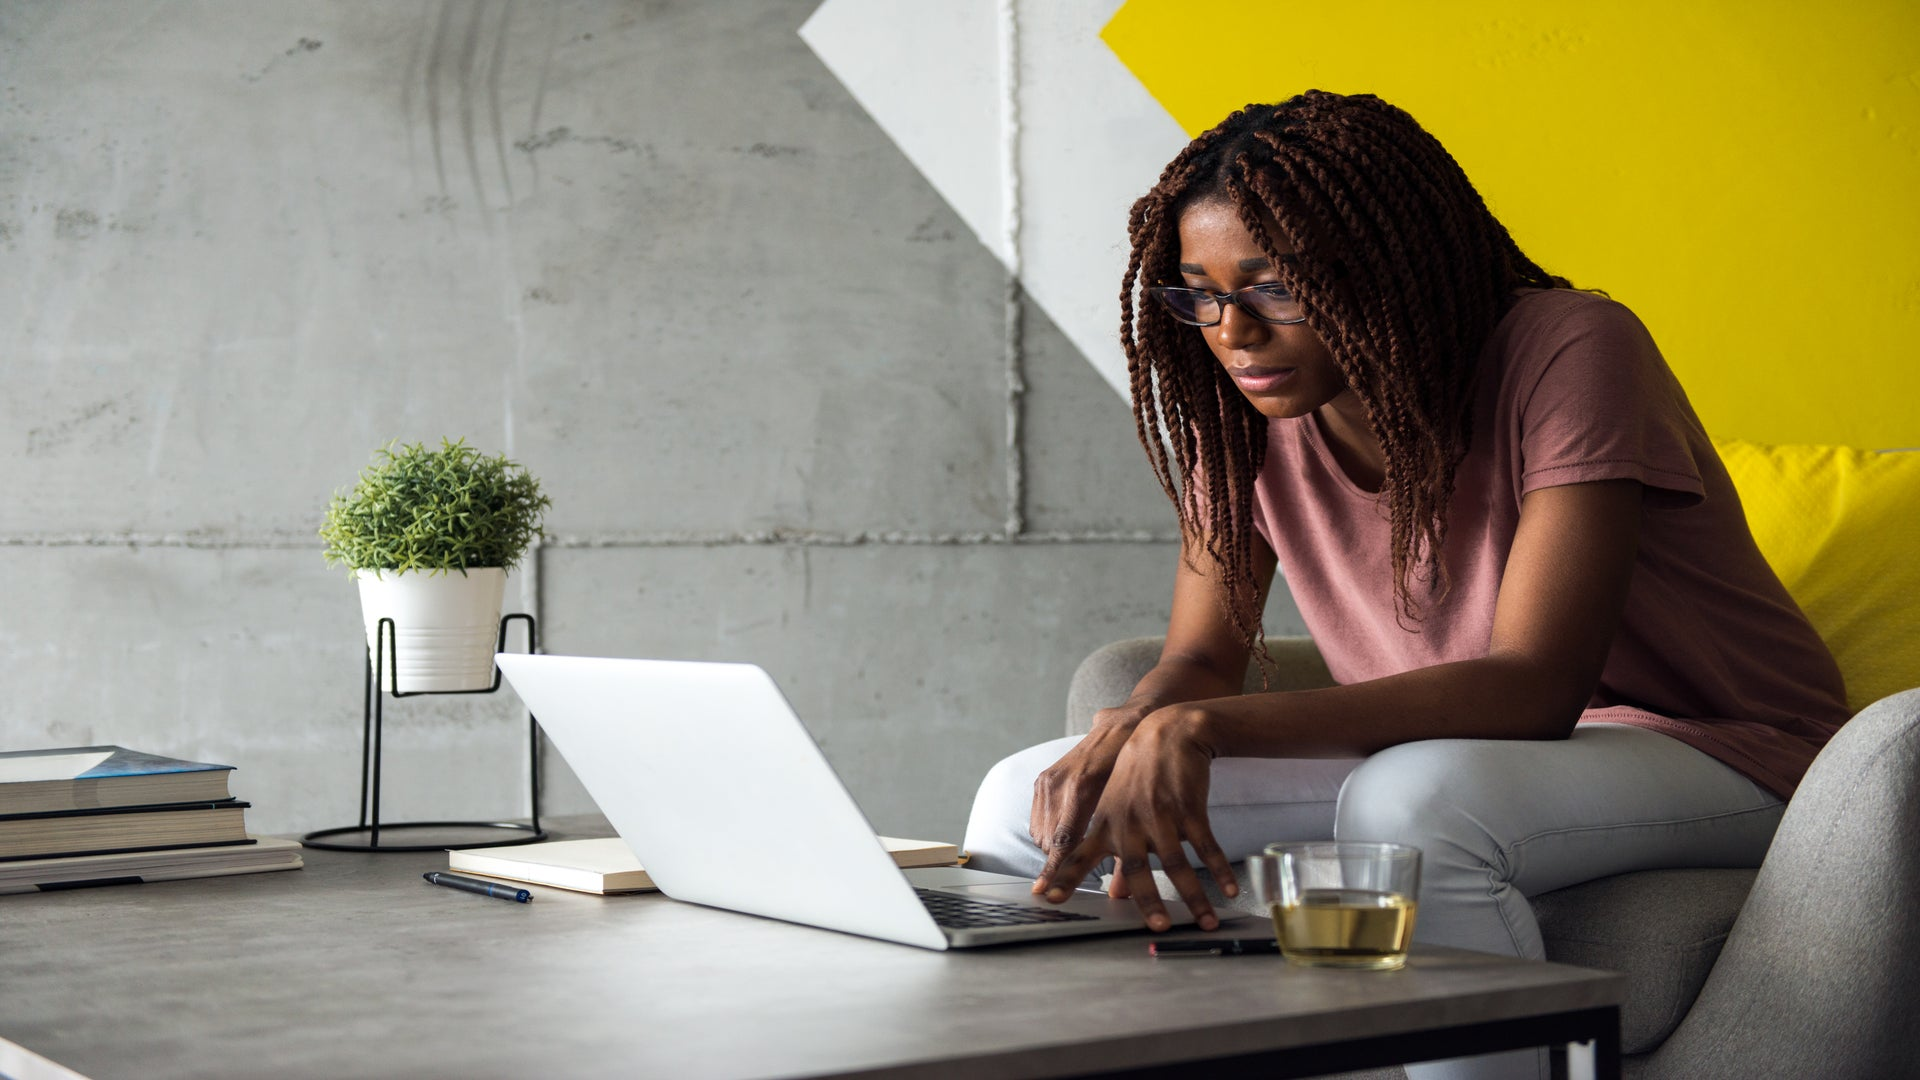 What It S Really Like To Be A Black Woman Job Hunting Women Share How To Stay Motivated During A Grueling Job Search